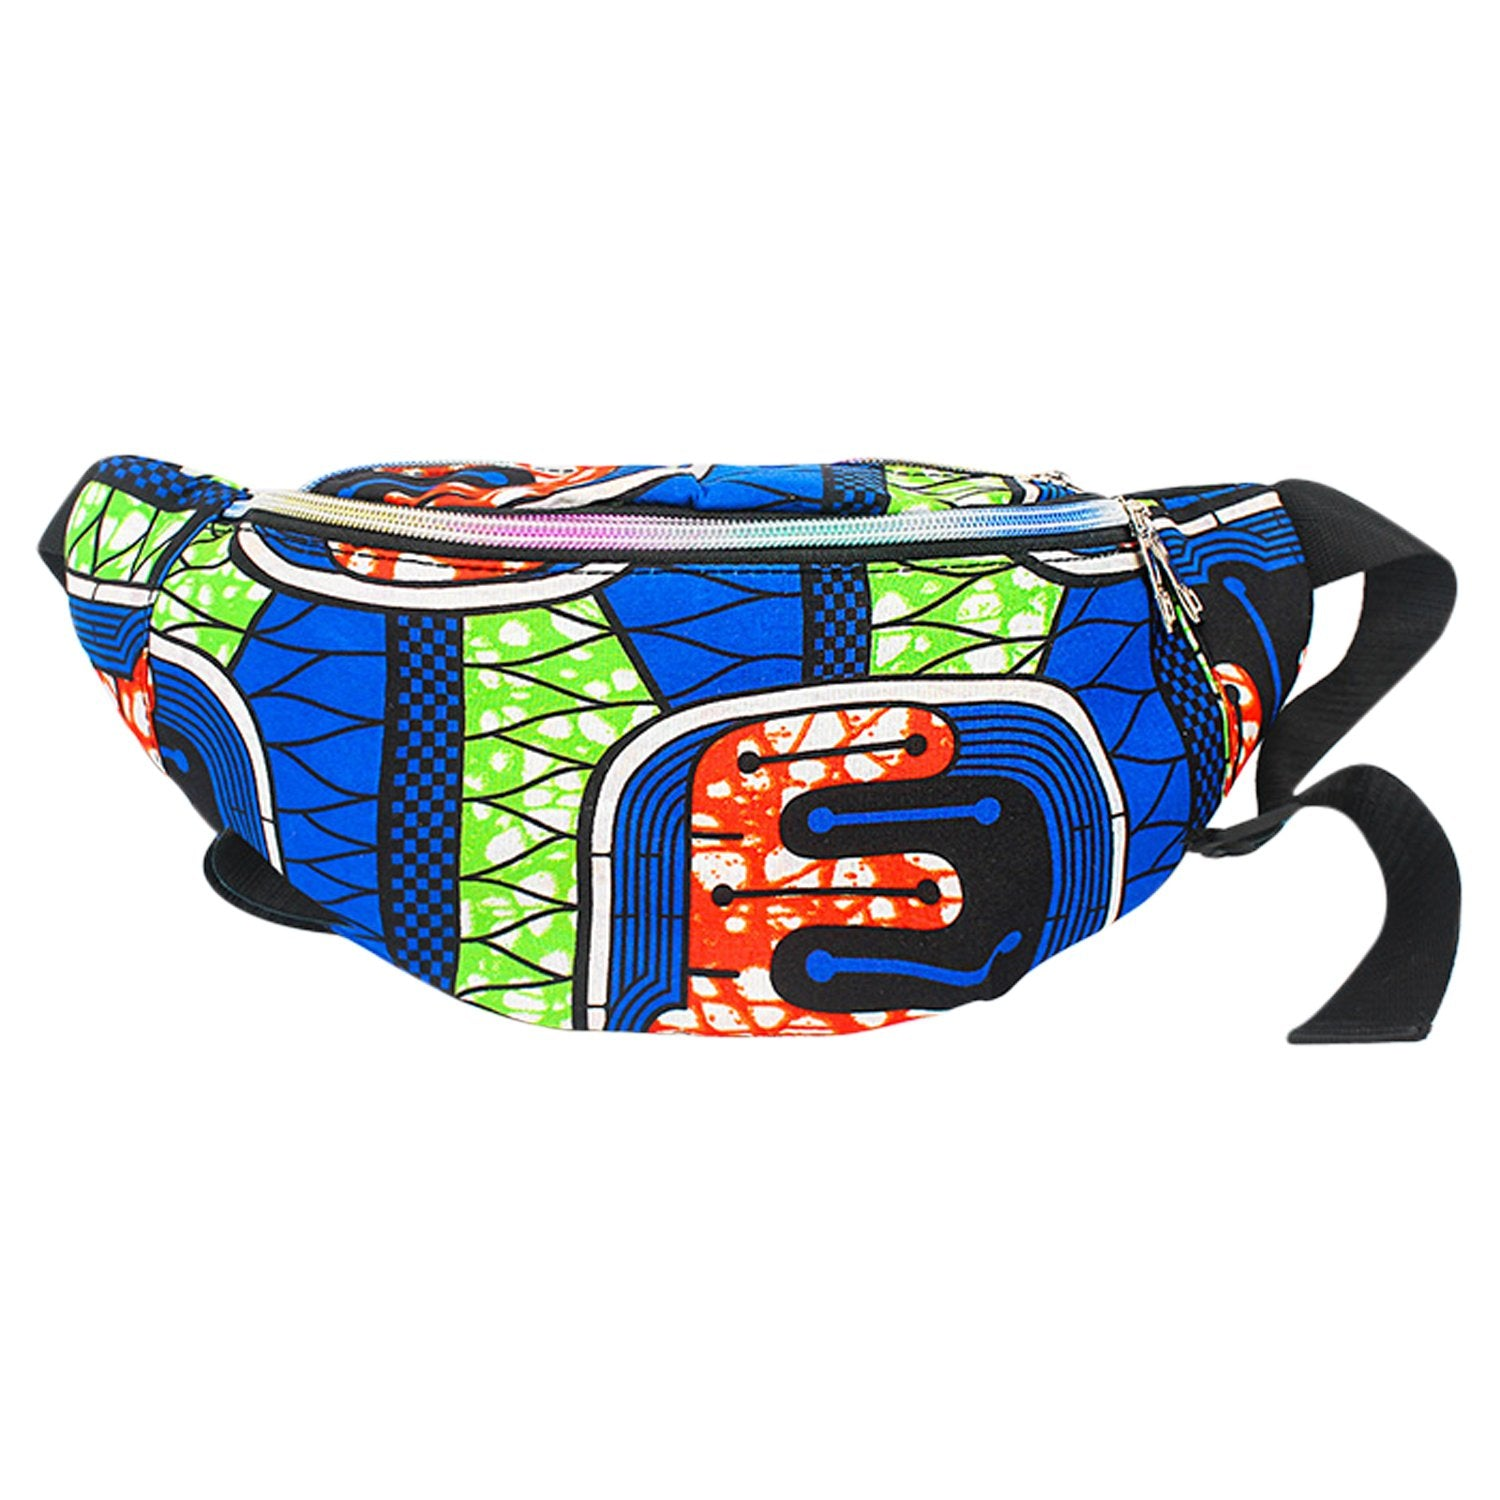 Garissa: African Print Fanny Pack by Boutique Africa